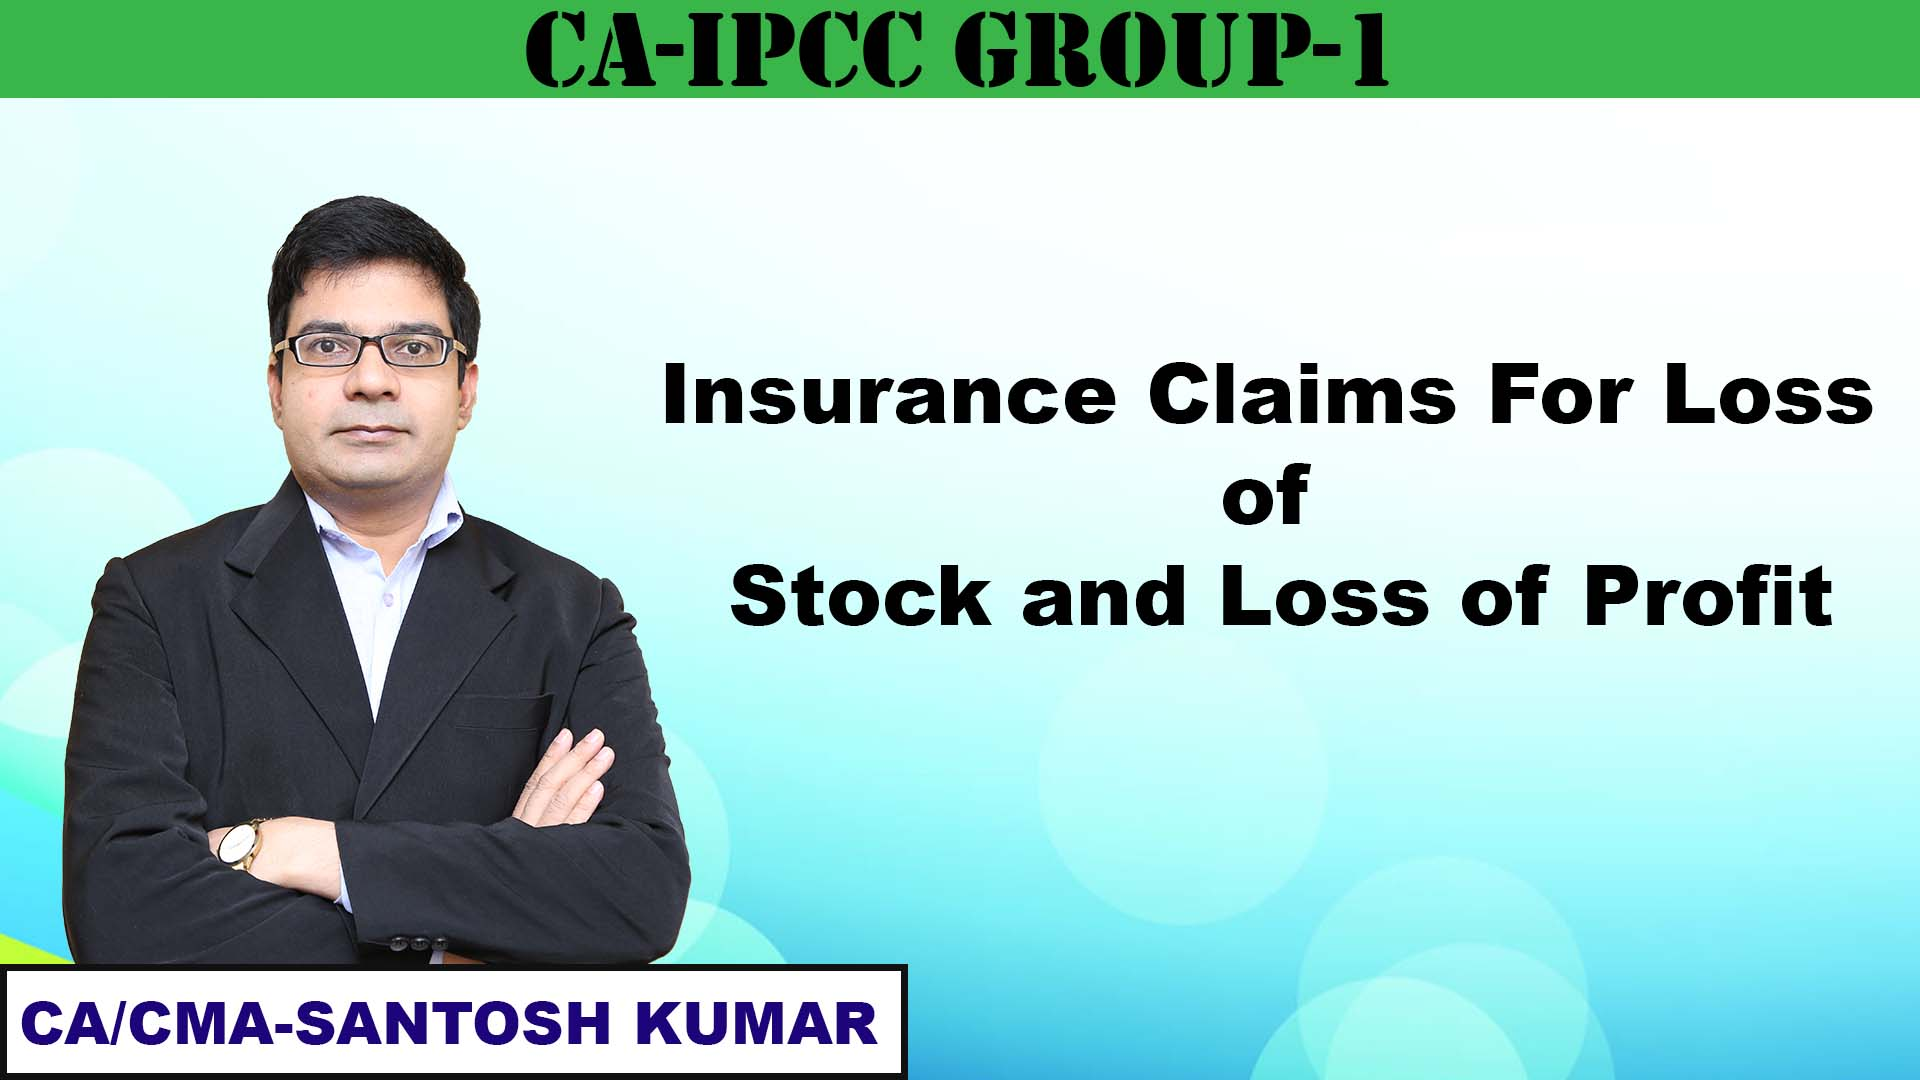 Insurance Claims for Loss of Stock and Loss of Profit